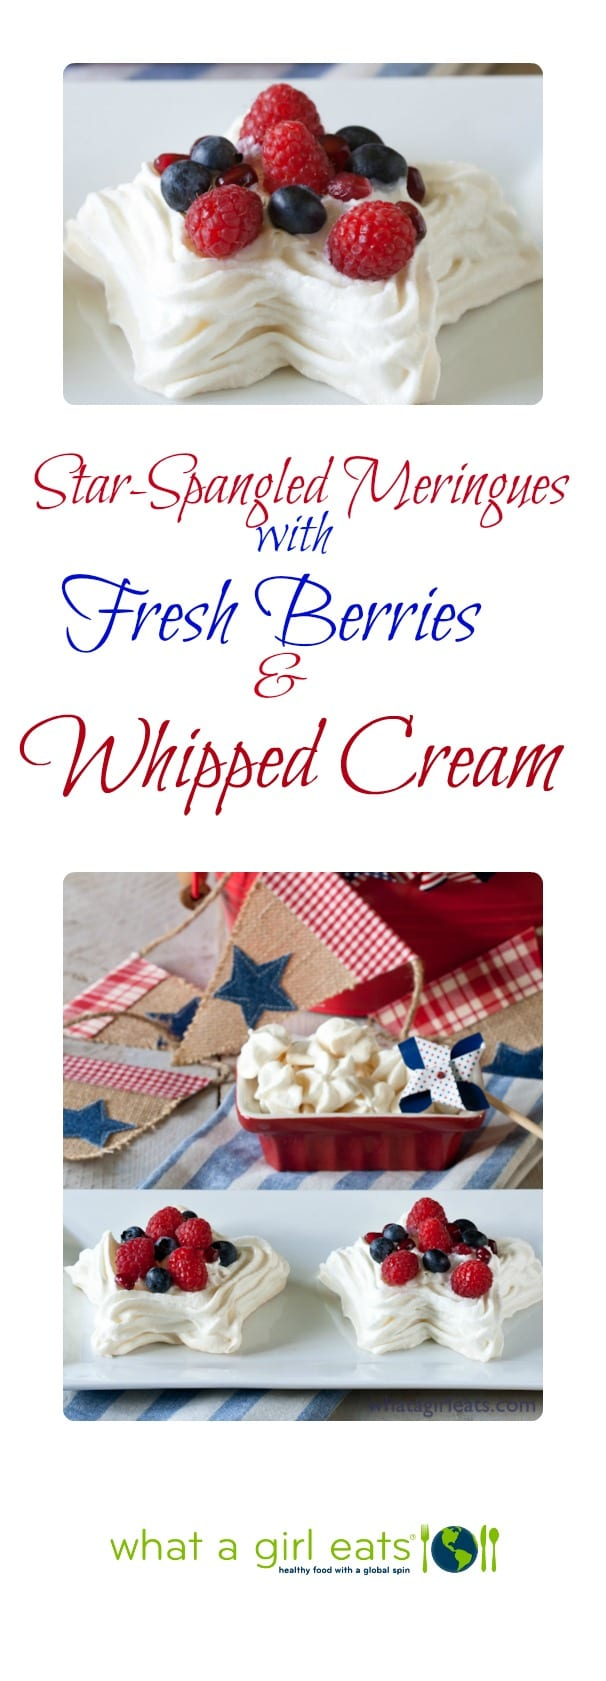 Star-Spangled Meringues with Fresh Berries.